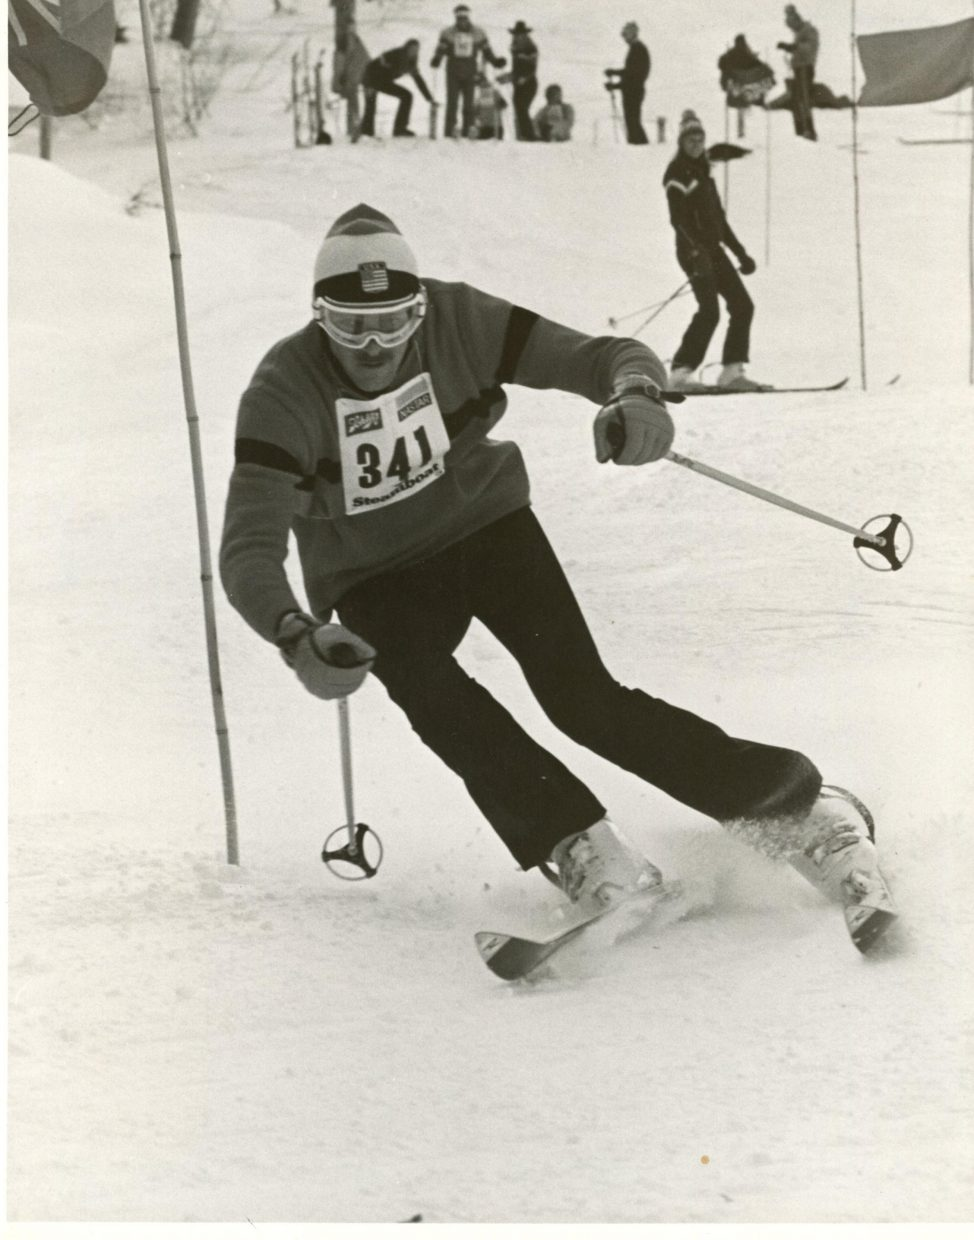 Early years racing at Howelson. Photo taken possibly in 1975. A group of us raced nights, and this picture was during Winter Carnival, during a race series that preceeded Town Challenge. I was second in this race, Chuck Stoughton, who owned a ski shop was third, and I can't remember who won. Submitted by Dr. Joihn Sharp.